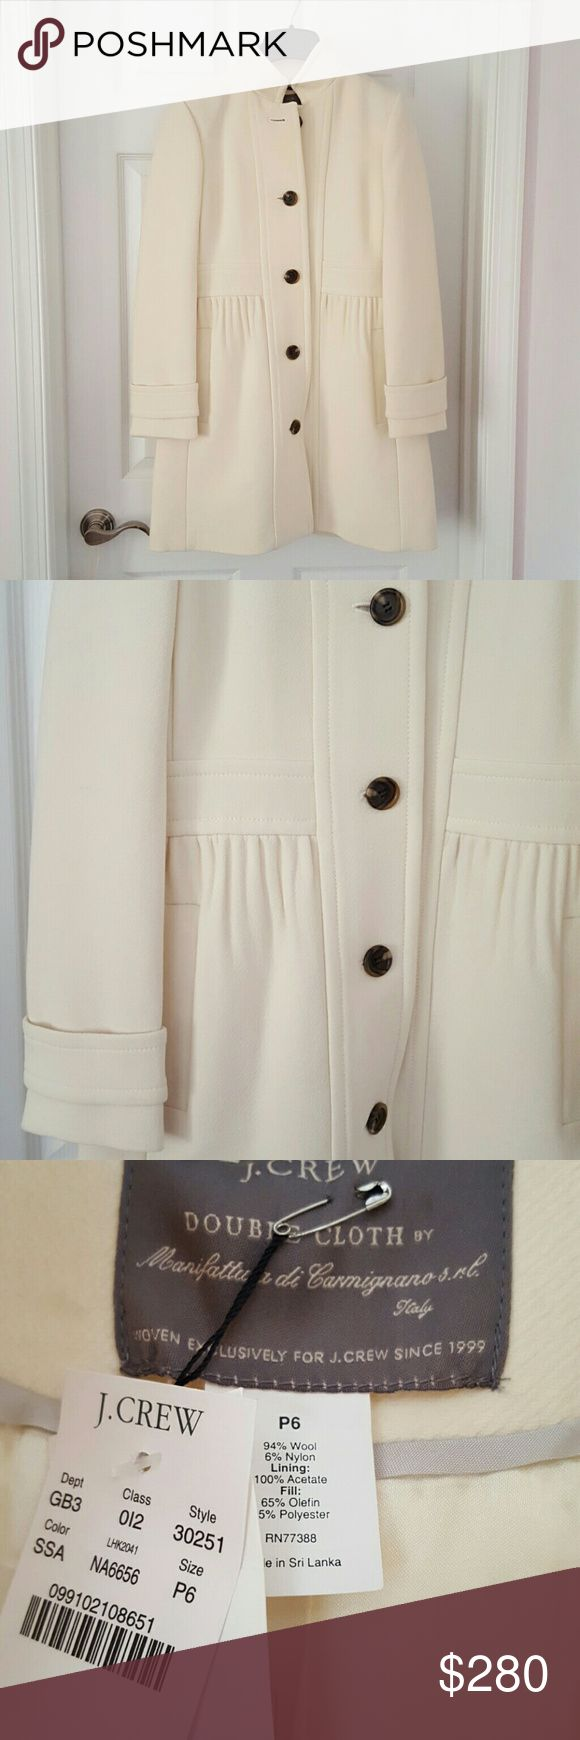 J Crew wool Double Coat Beautiful  ivory Italian wool J Crew  coat with thinsulate insulation. This coat have all the details and will keep u extra warm .Size is 6 petit. Brand new . J. Crew Jackets & Coats